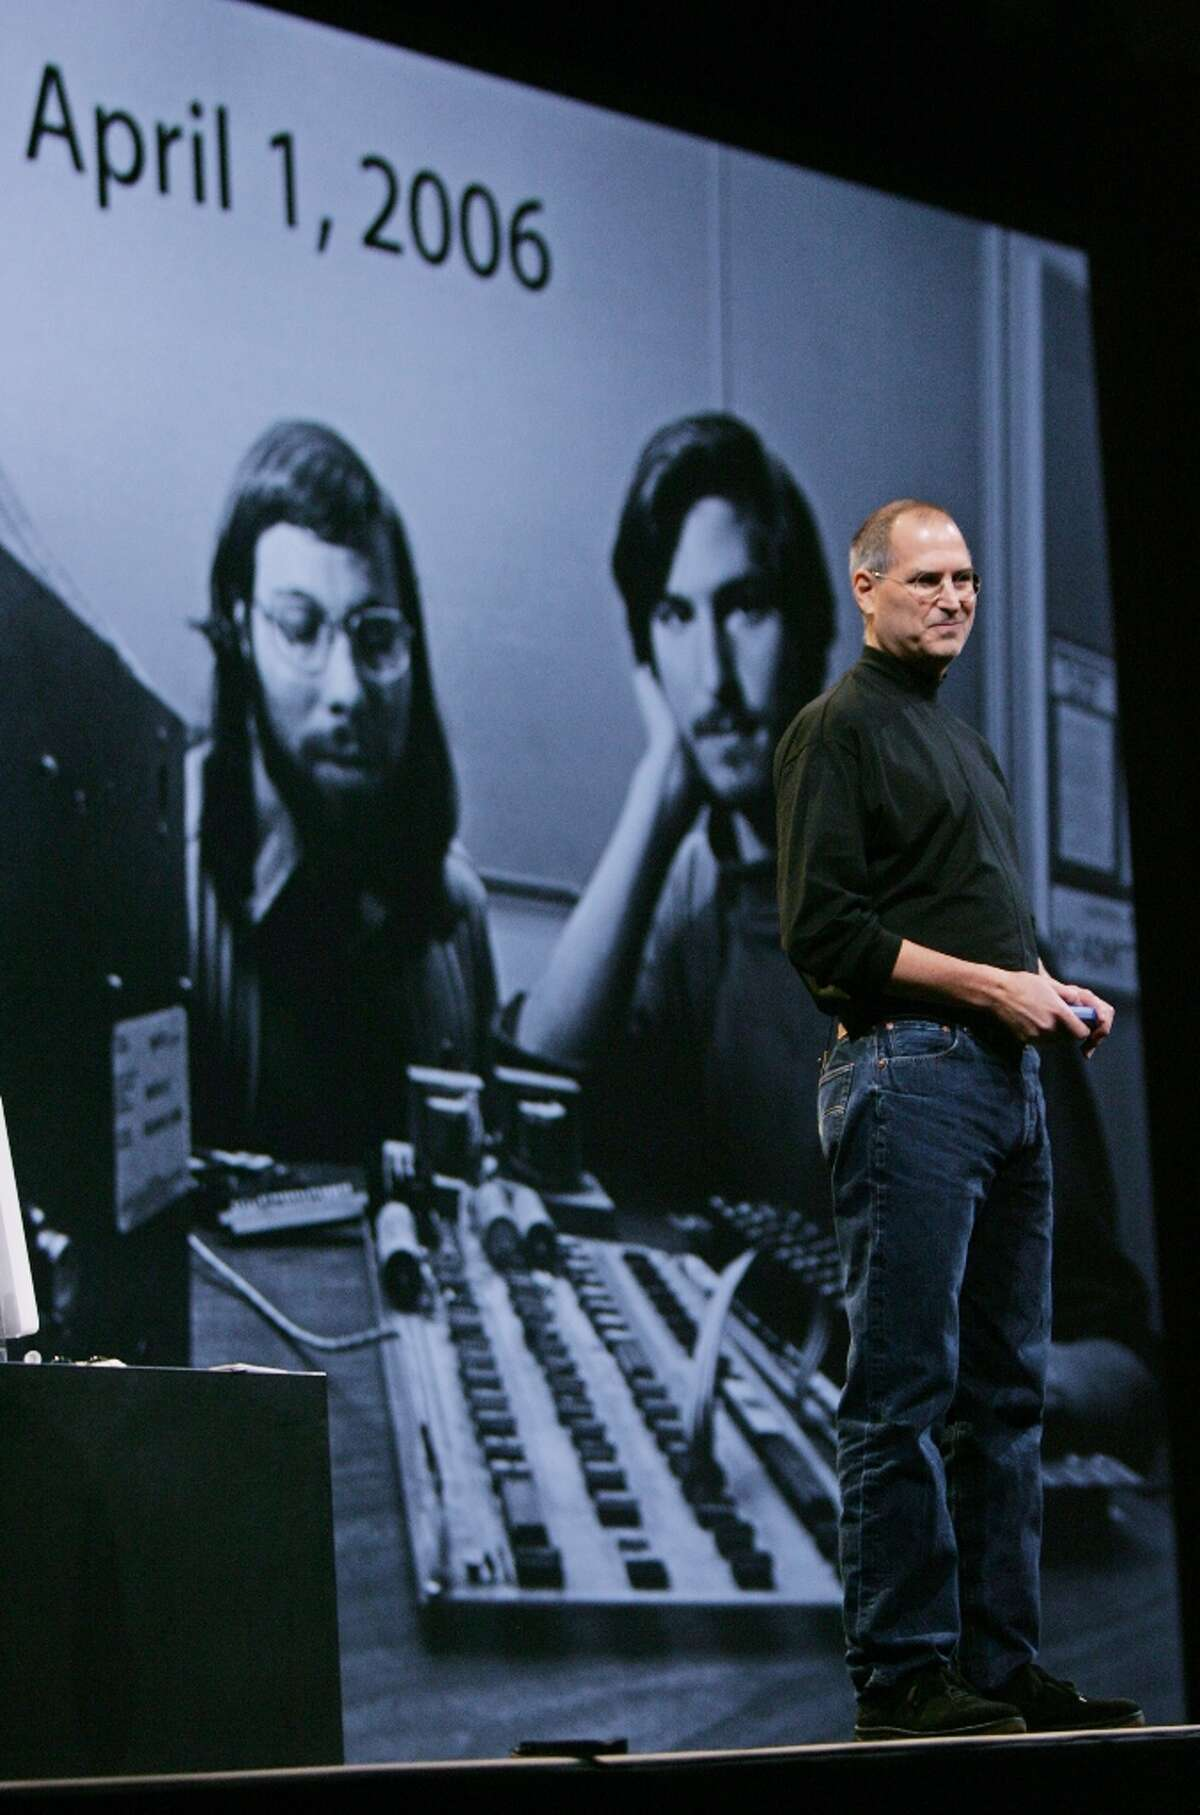 Click through this slideshow to see Steve Jobs and Steve Wozniak through the years. At Macworld 2006, Steve Jobs shows a photo of himself with Steve Wozniak as Apple prepares to celebrate its 30th anniversary.